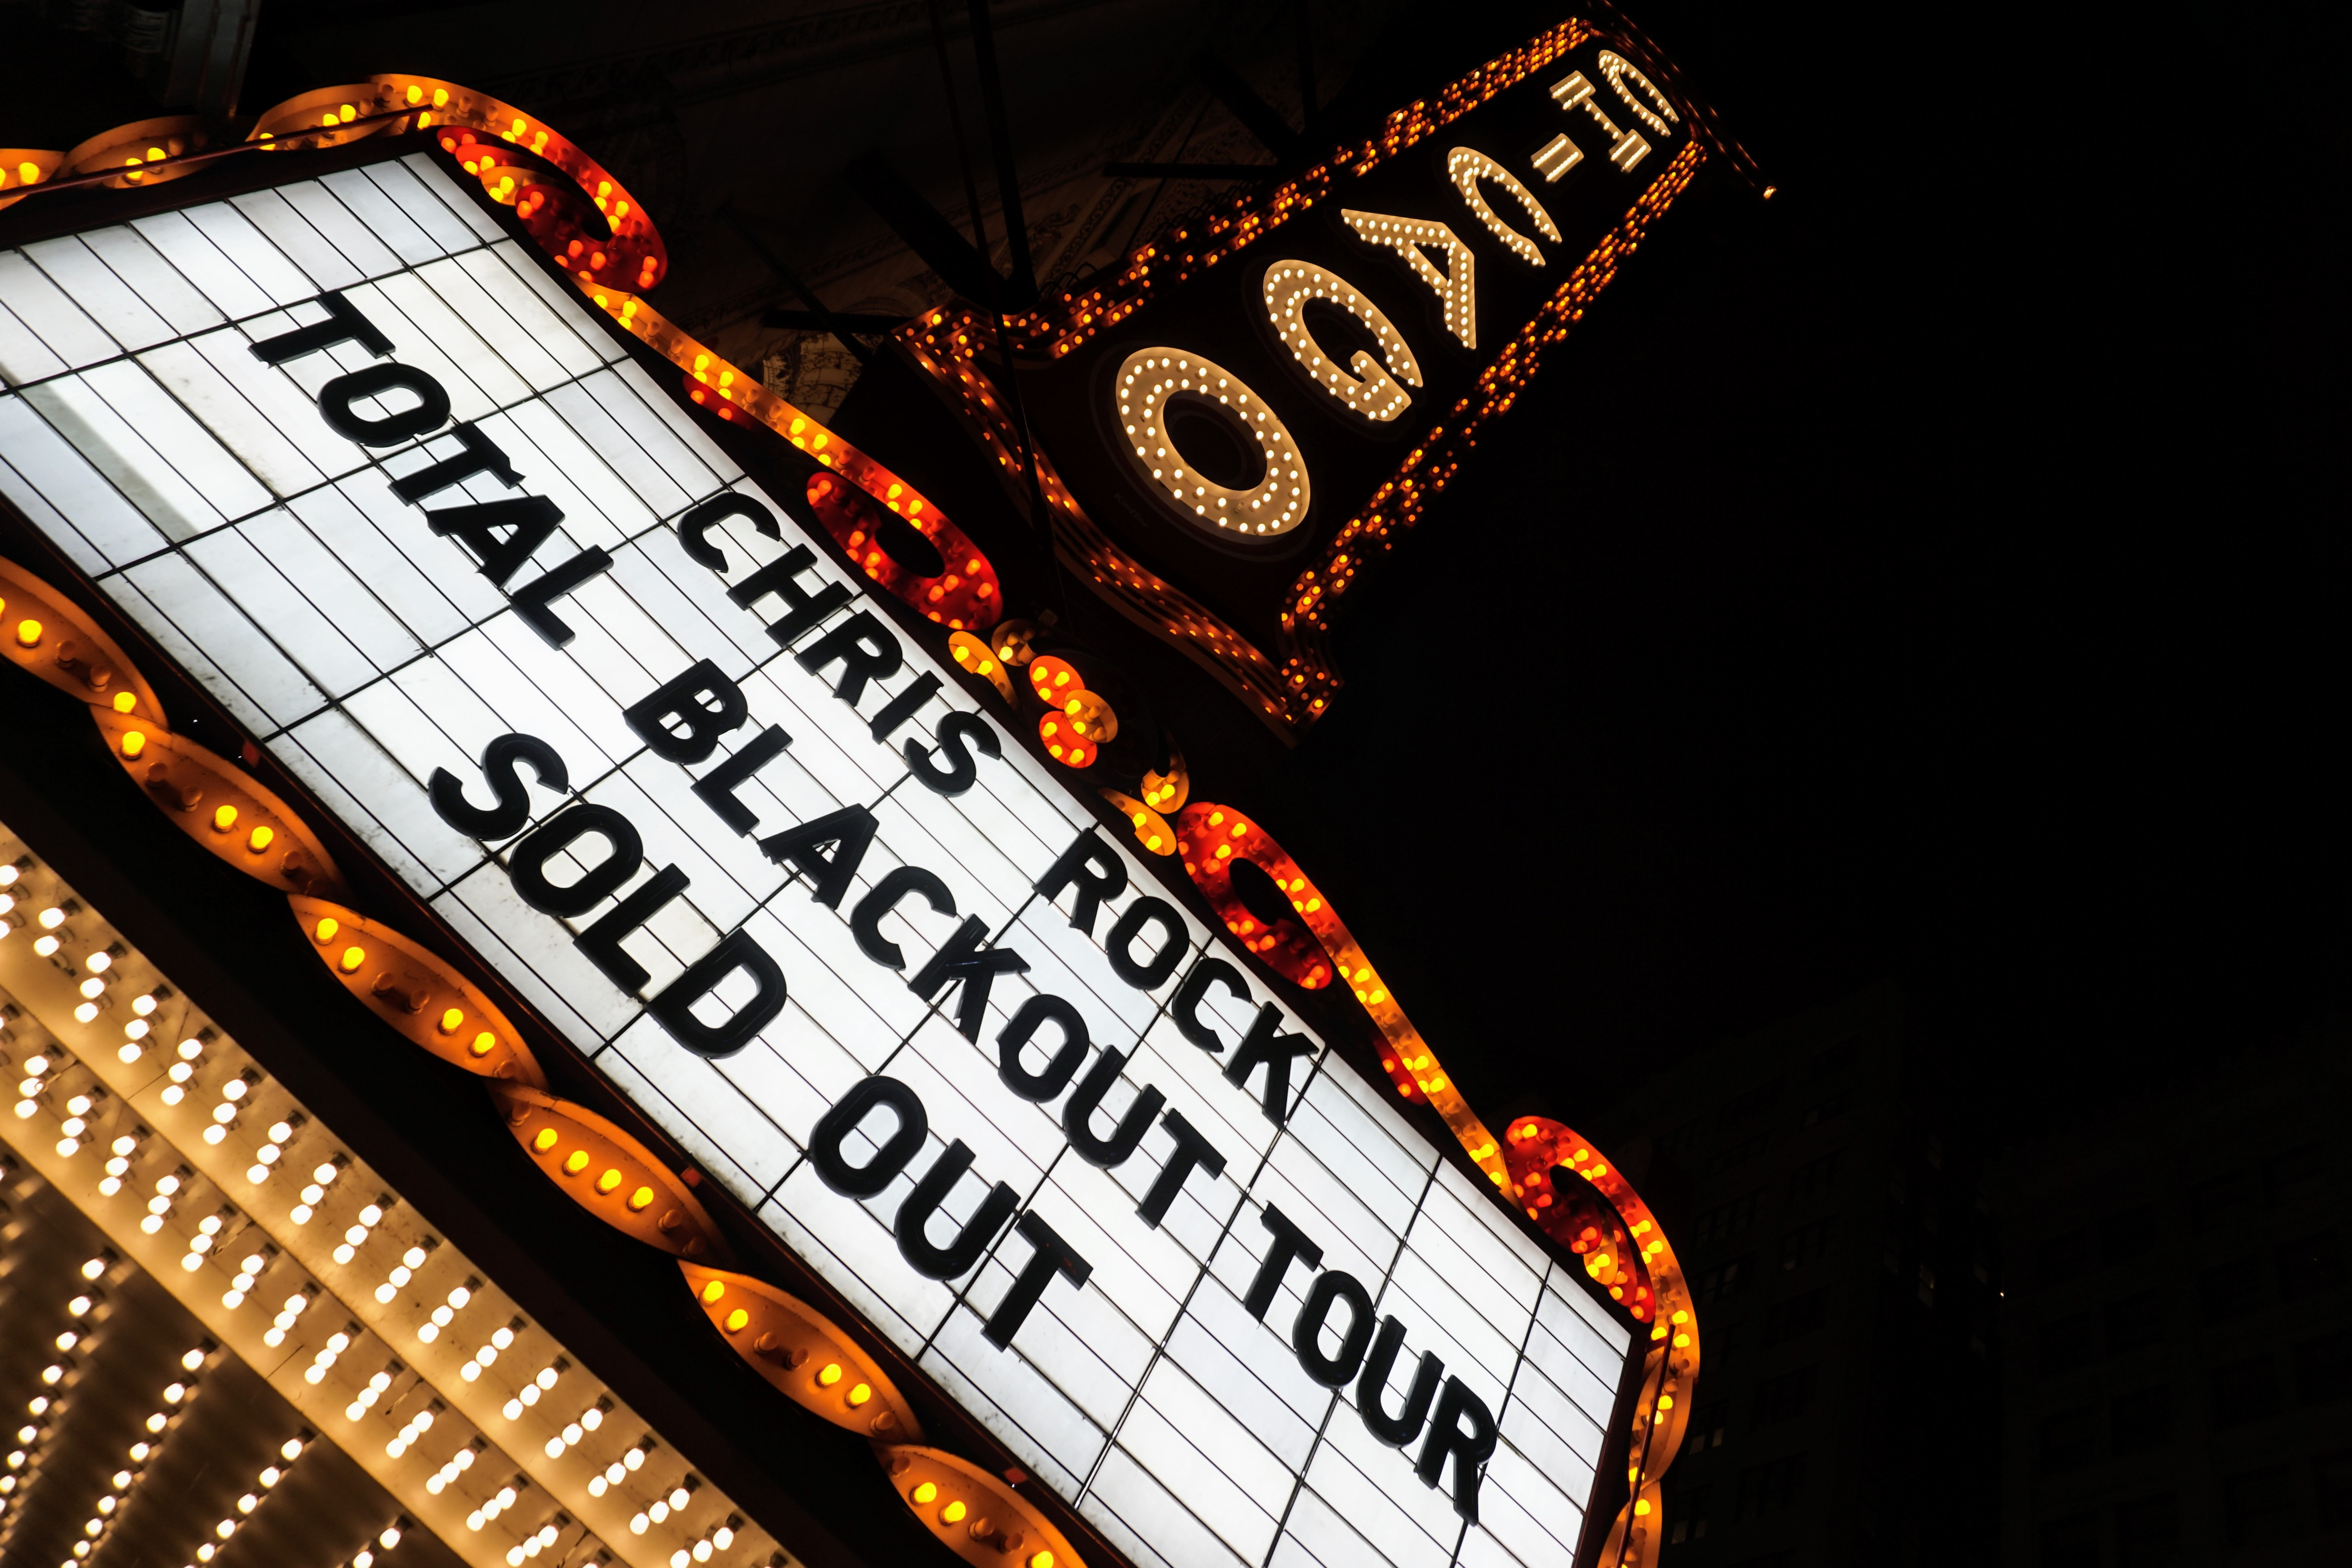 Chris Rock total blackout tour sold out neon signage